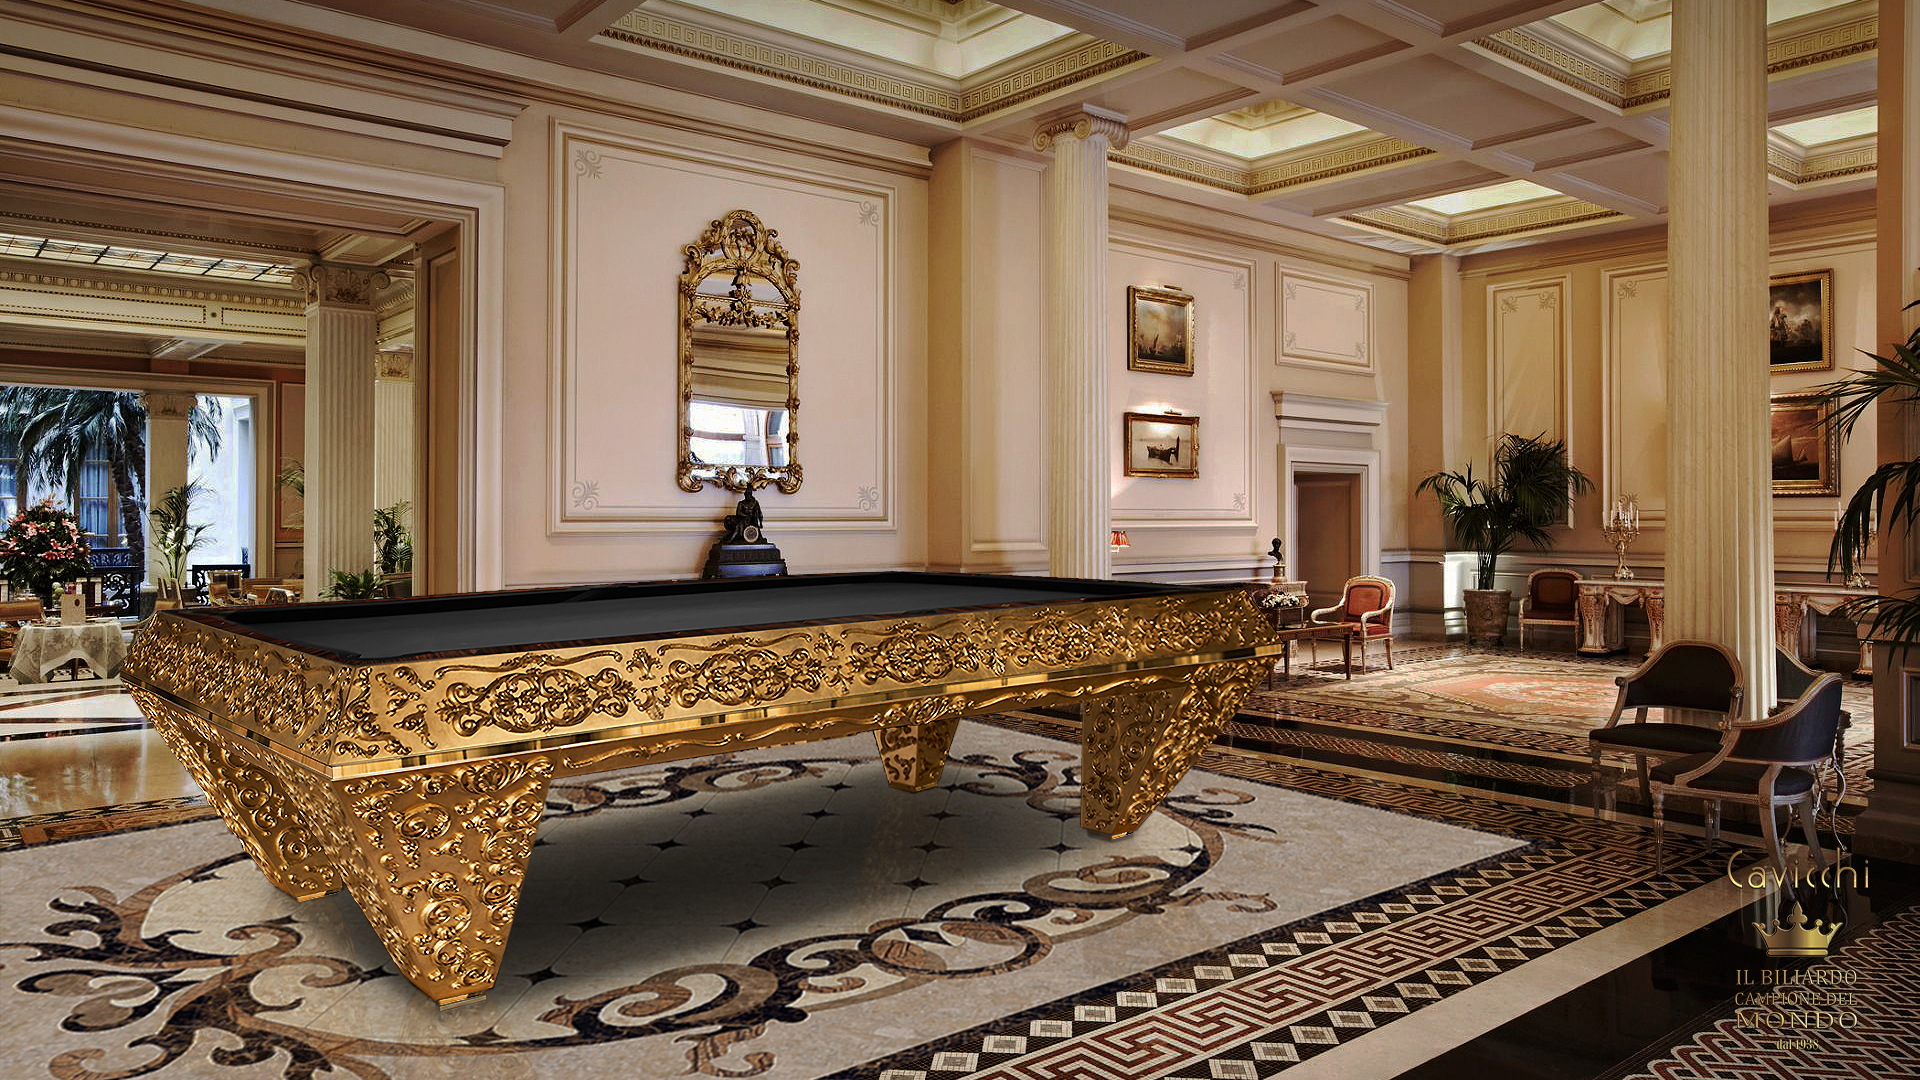 Pashà Gold Pool Table - Showroom Shop 1